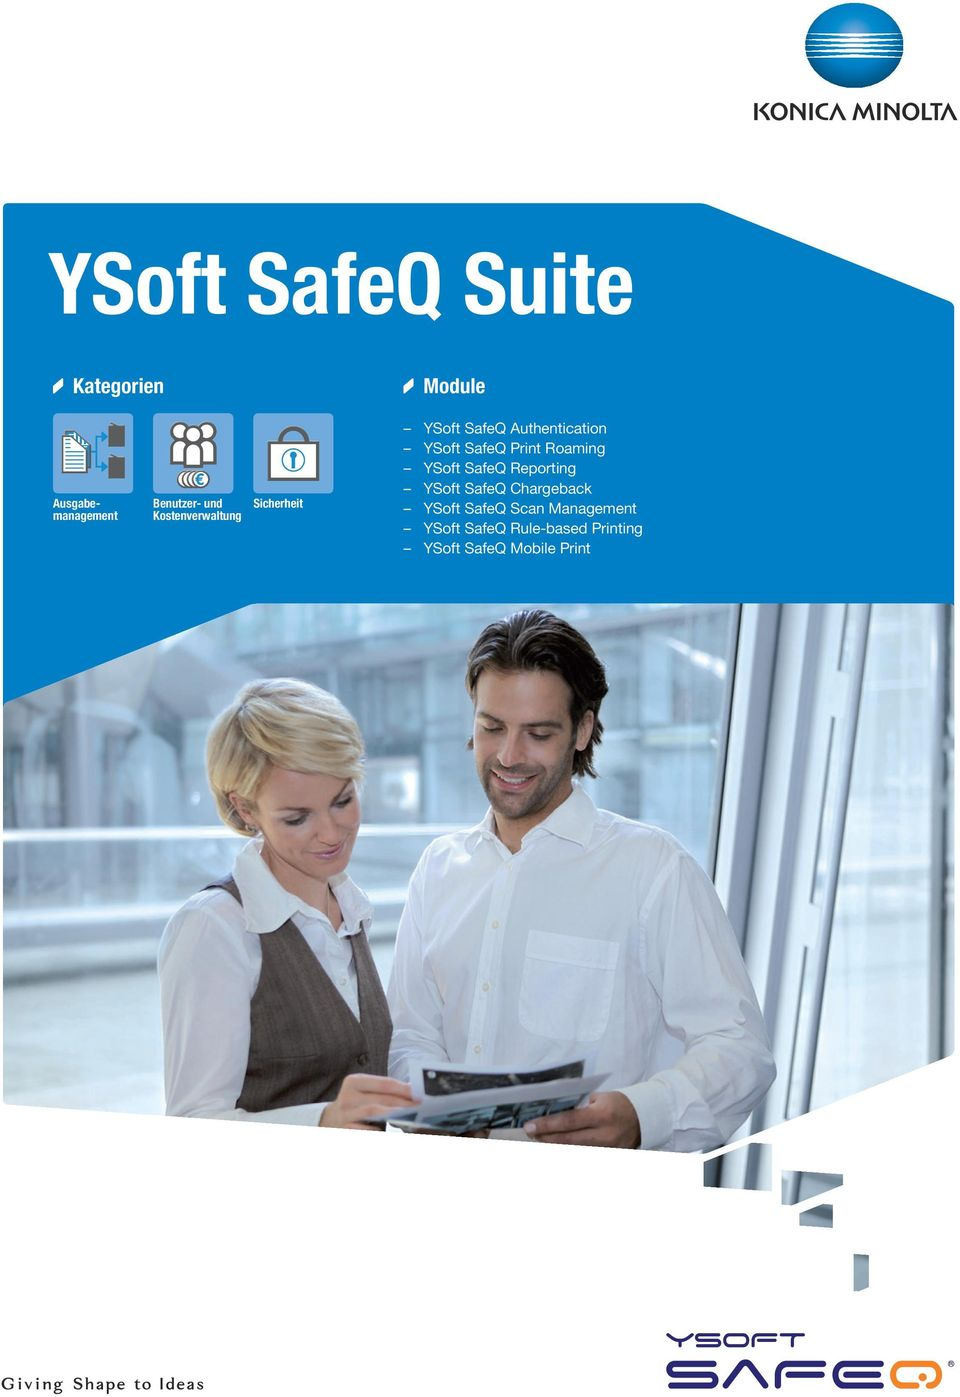 Print Roaming YSoft SafeQ Reporting YSoft SafeQ Chargeback YSoft